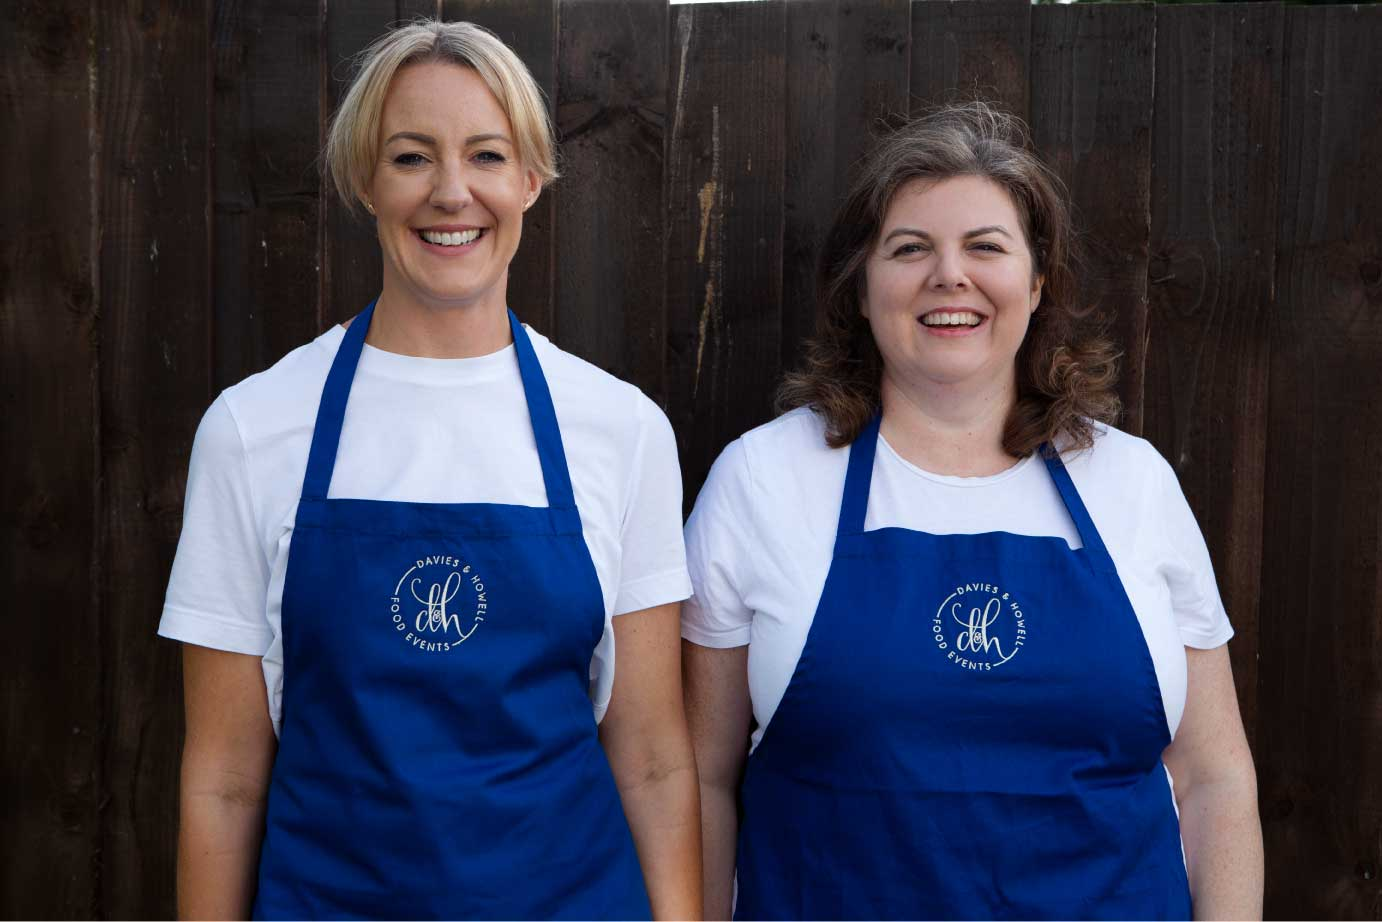 Private Chef's Kristy & Claire: A Success Story During Quarantine